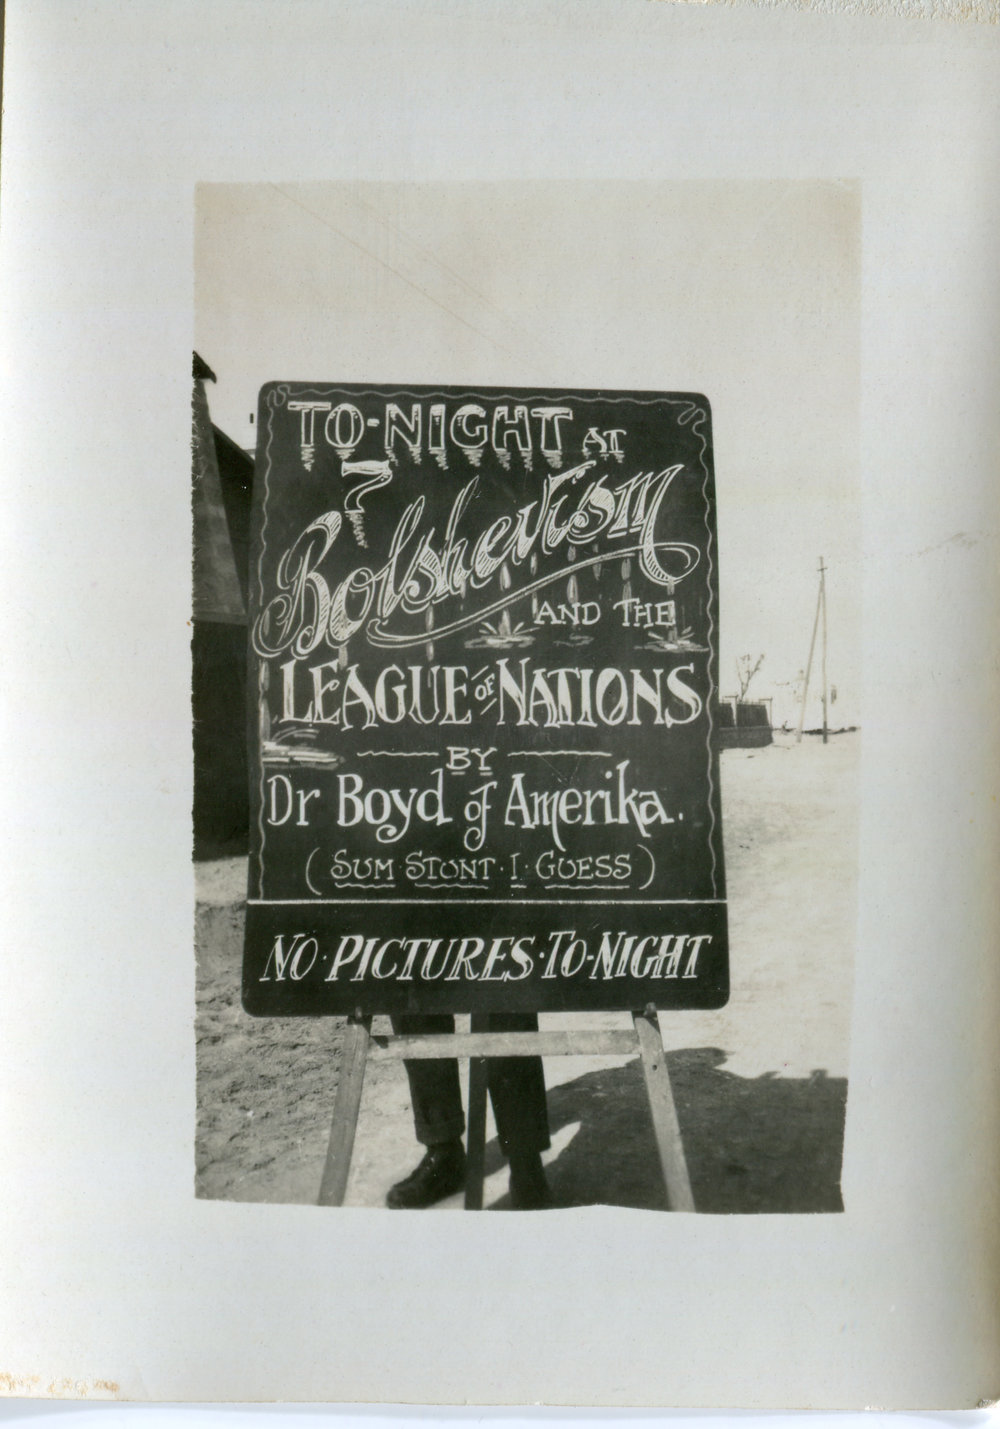 Reg's chalkboard advertising Dr Boyd's lecture on Bolshevism and the League of Nationals.